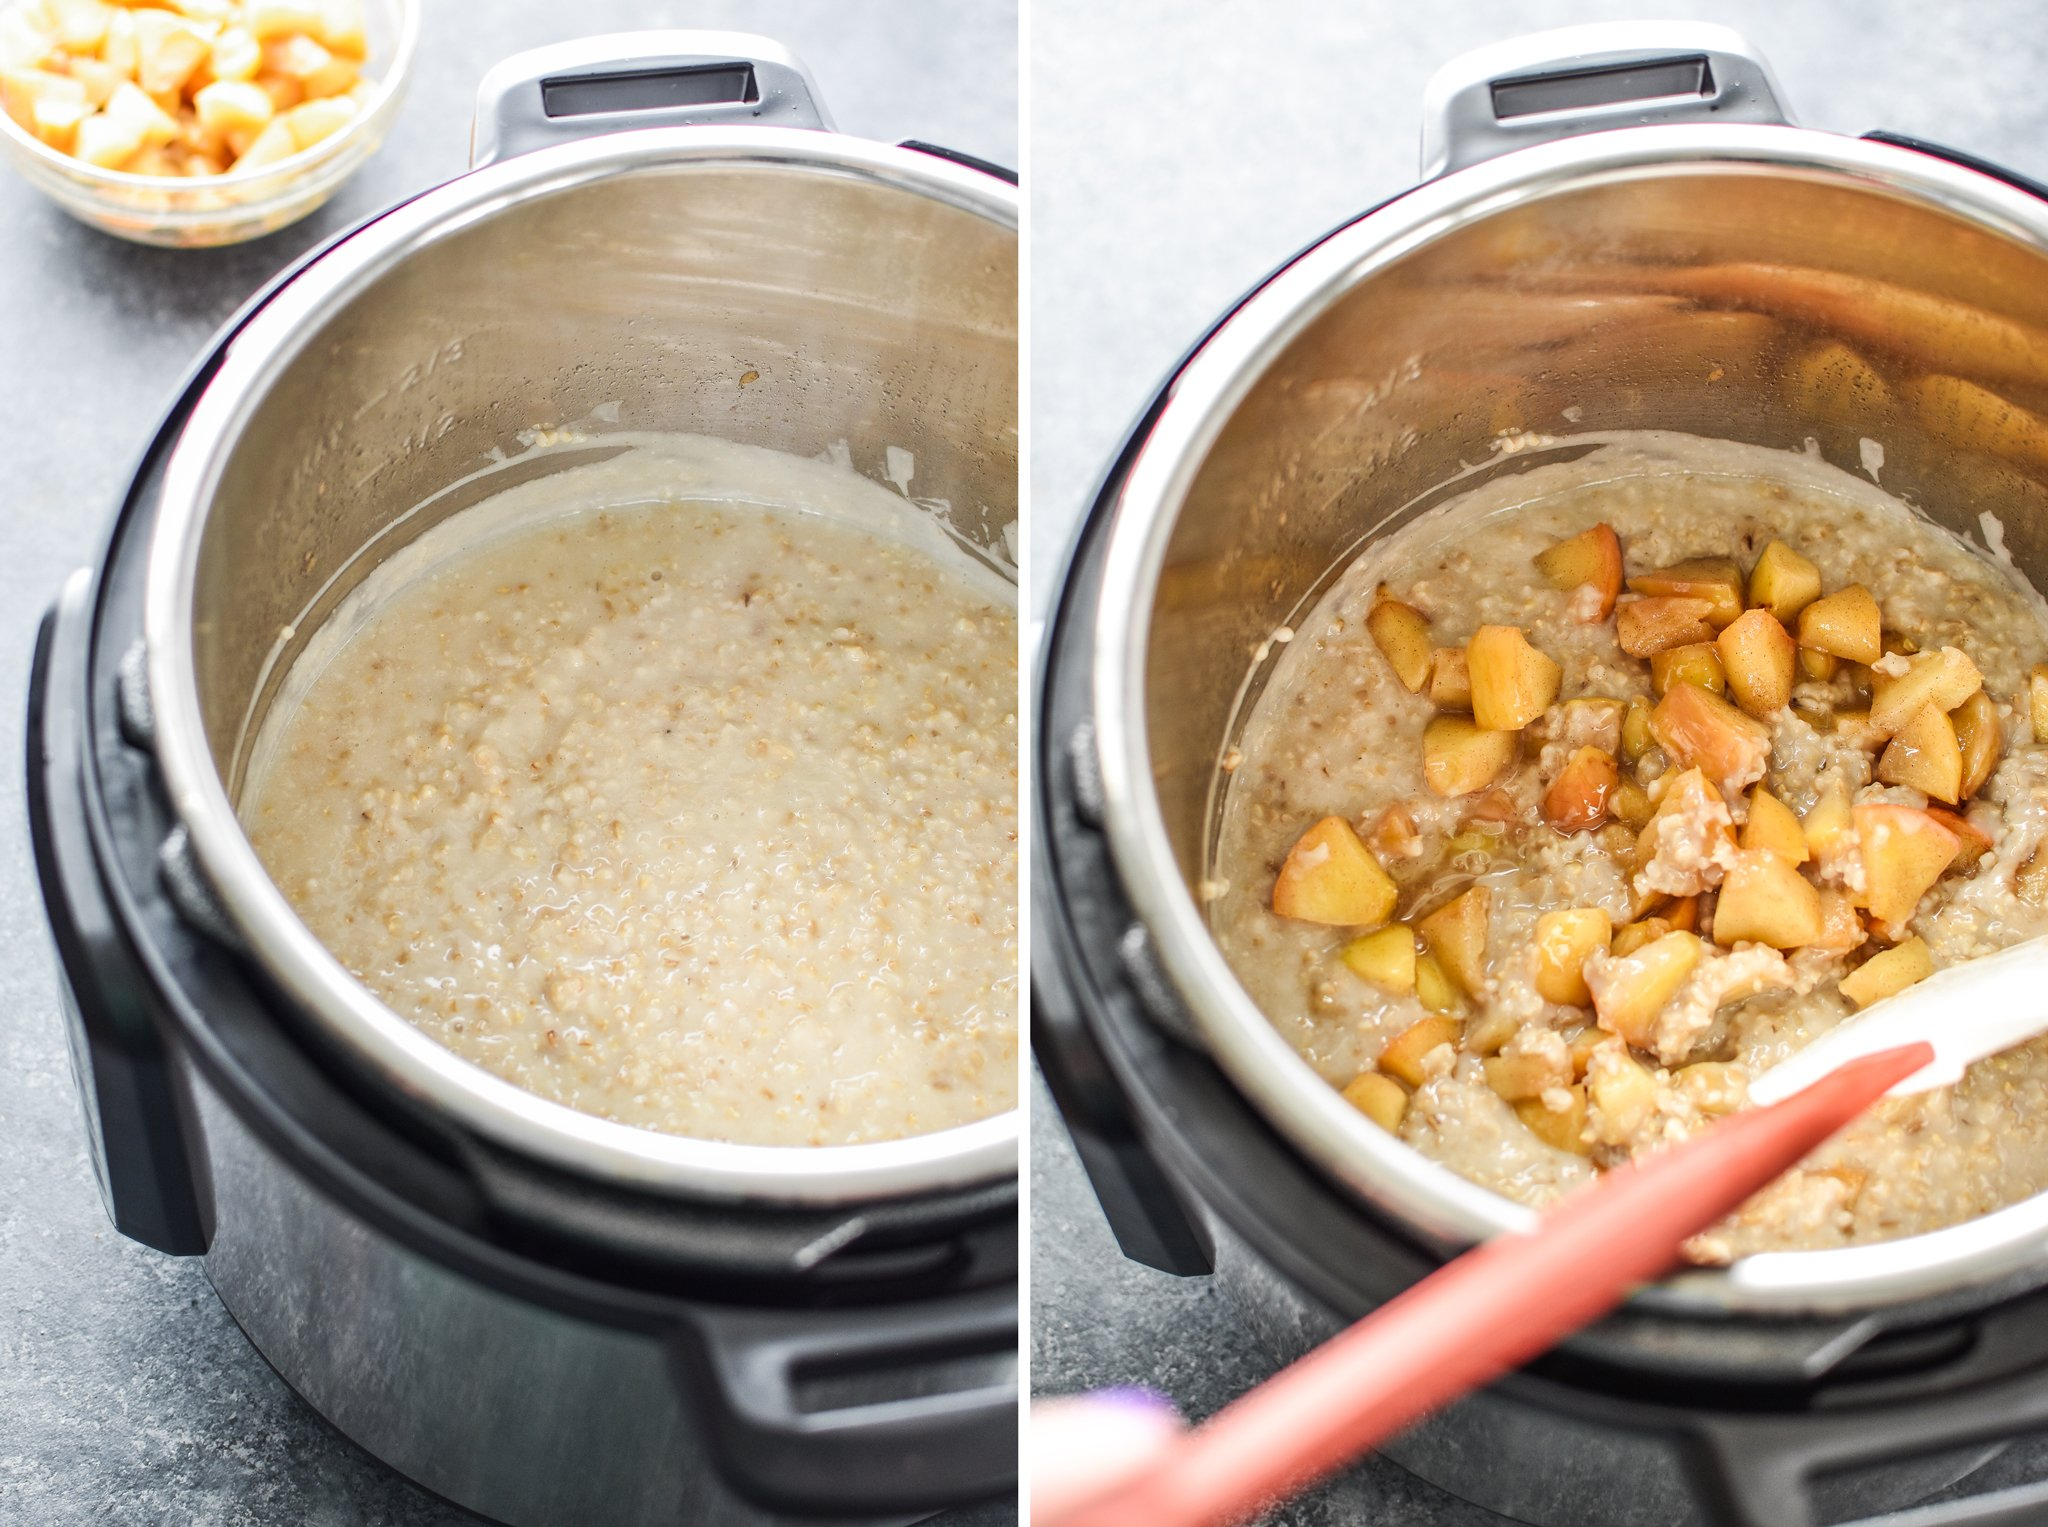 Making cinnamon apple steel cut oats in my Instant Pot - Here are The First 25 Recipes I Made With My Instant Pot